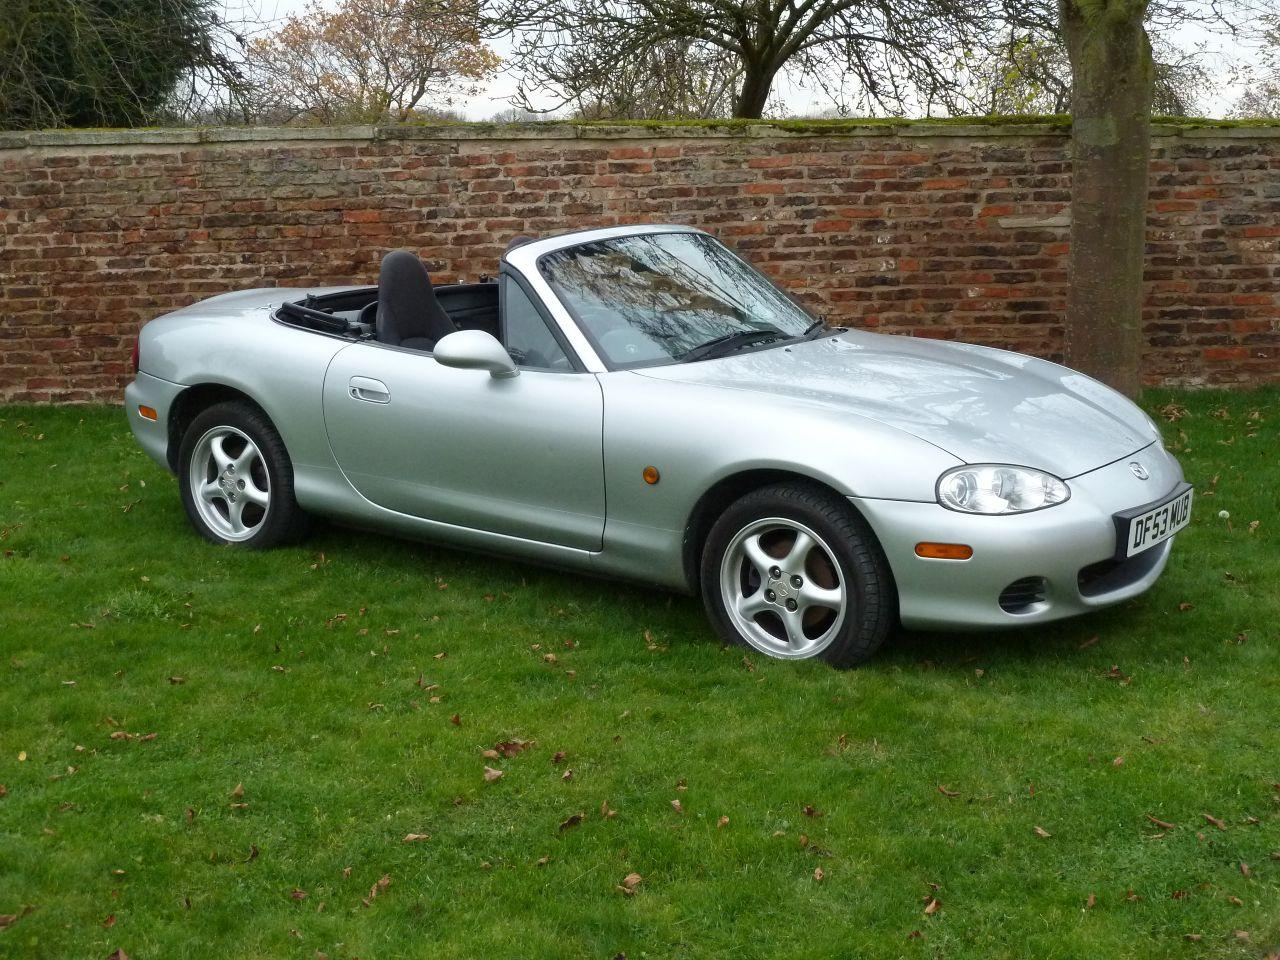 Mazda MX-5 1.6 Superb Value Reliable Sportscar Convertible Petrol Silver